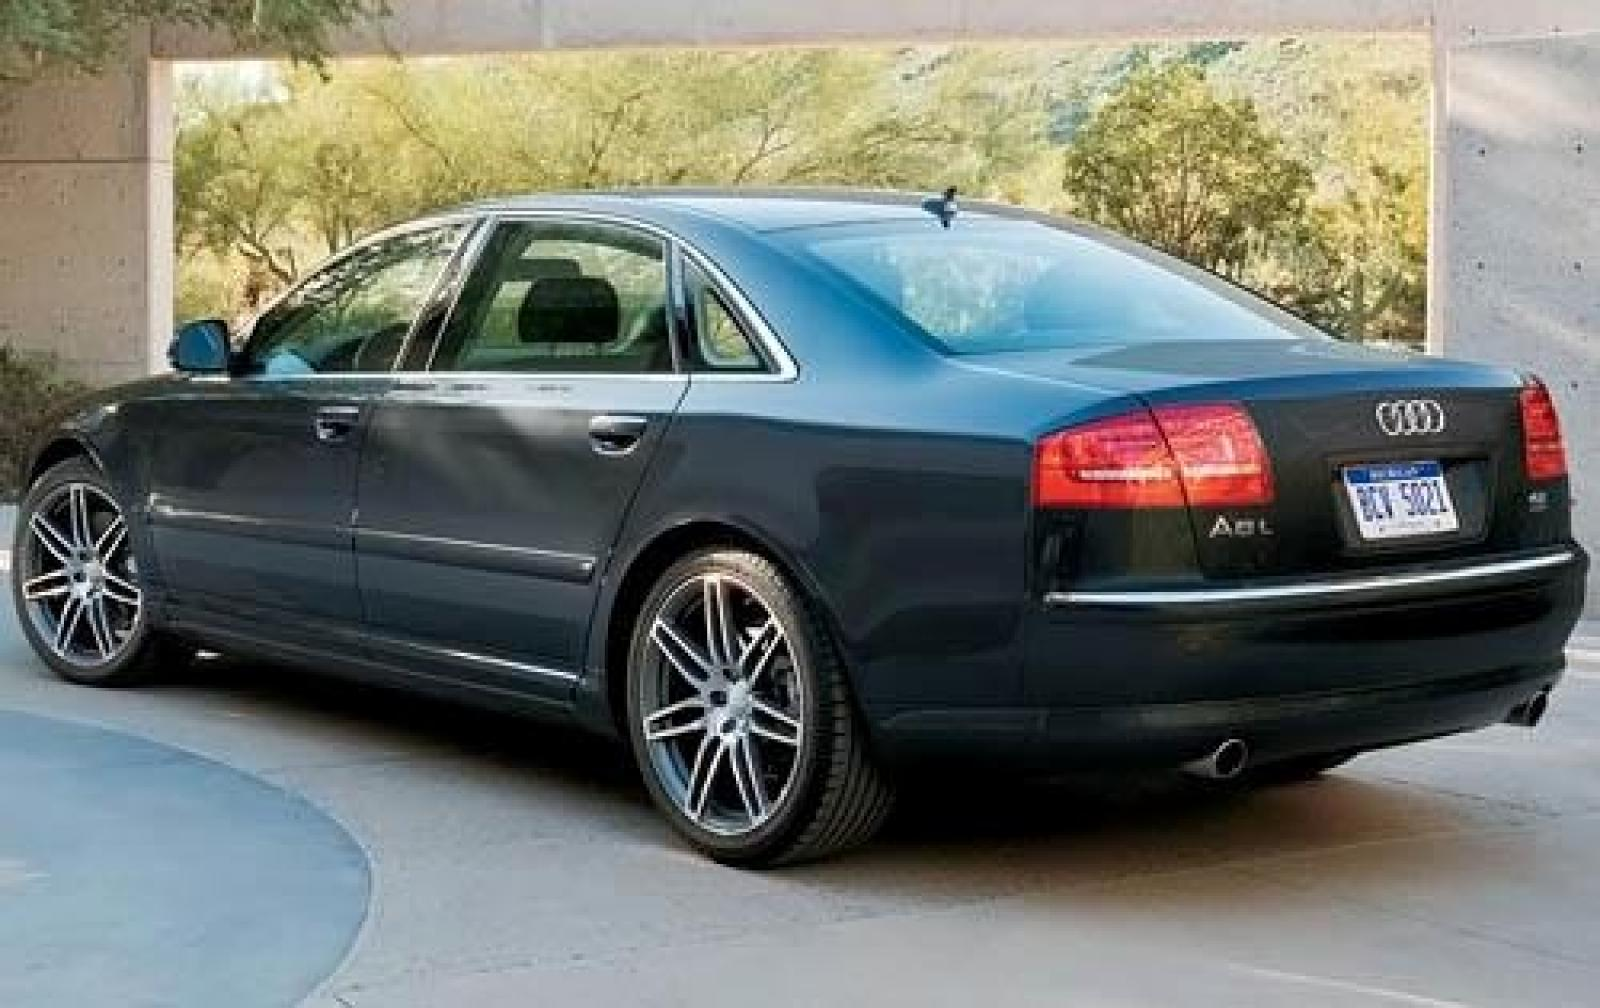 2010 audi a8 information and photos zombiedrive. Black Bedroom Furniture Sets. Home Design Ideas